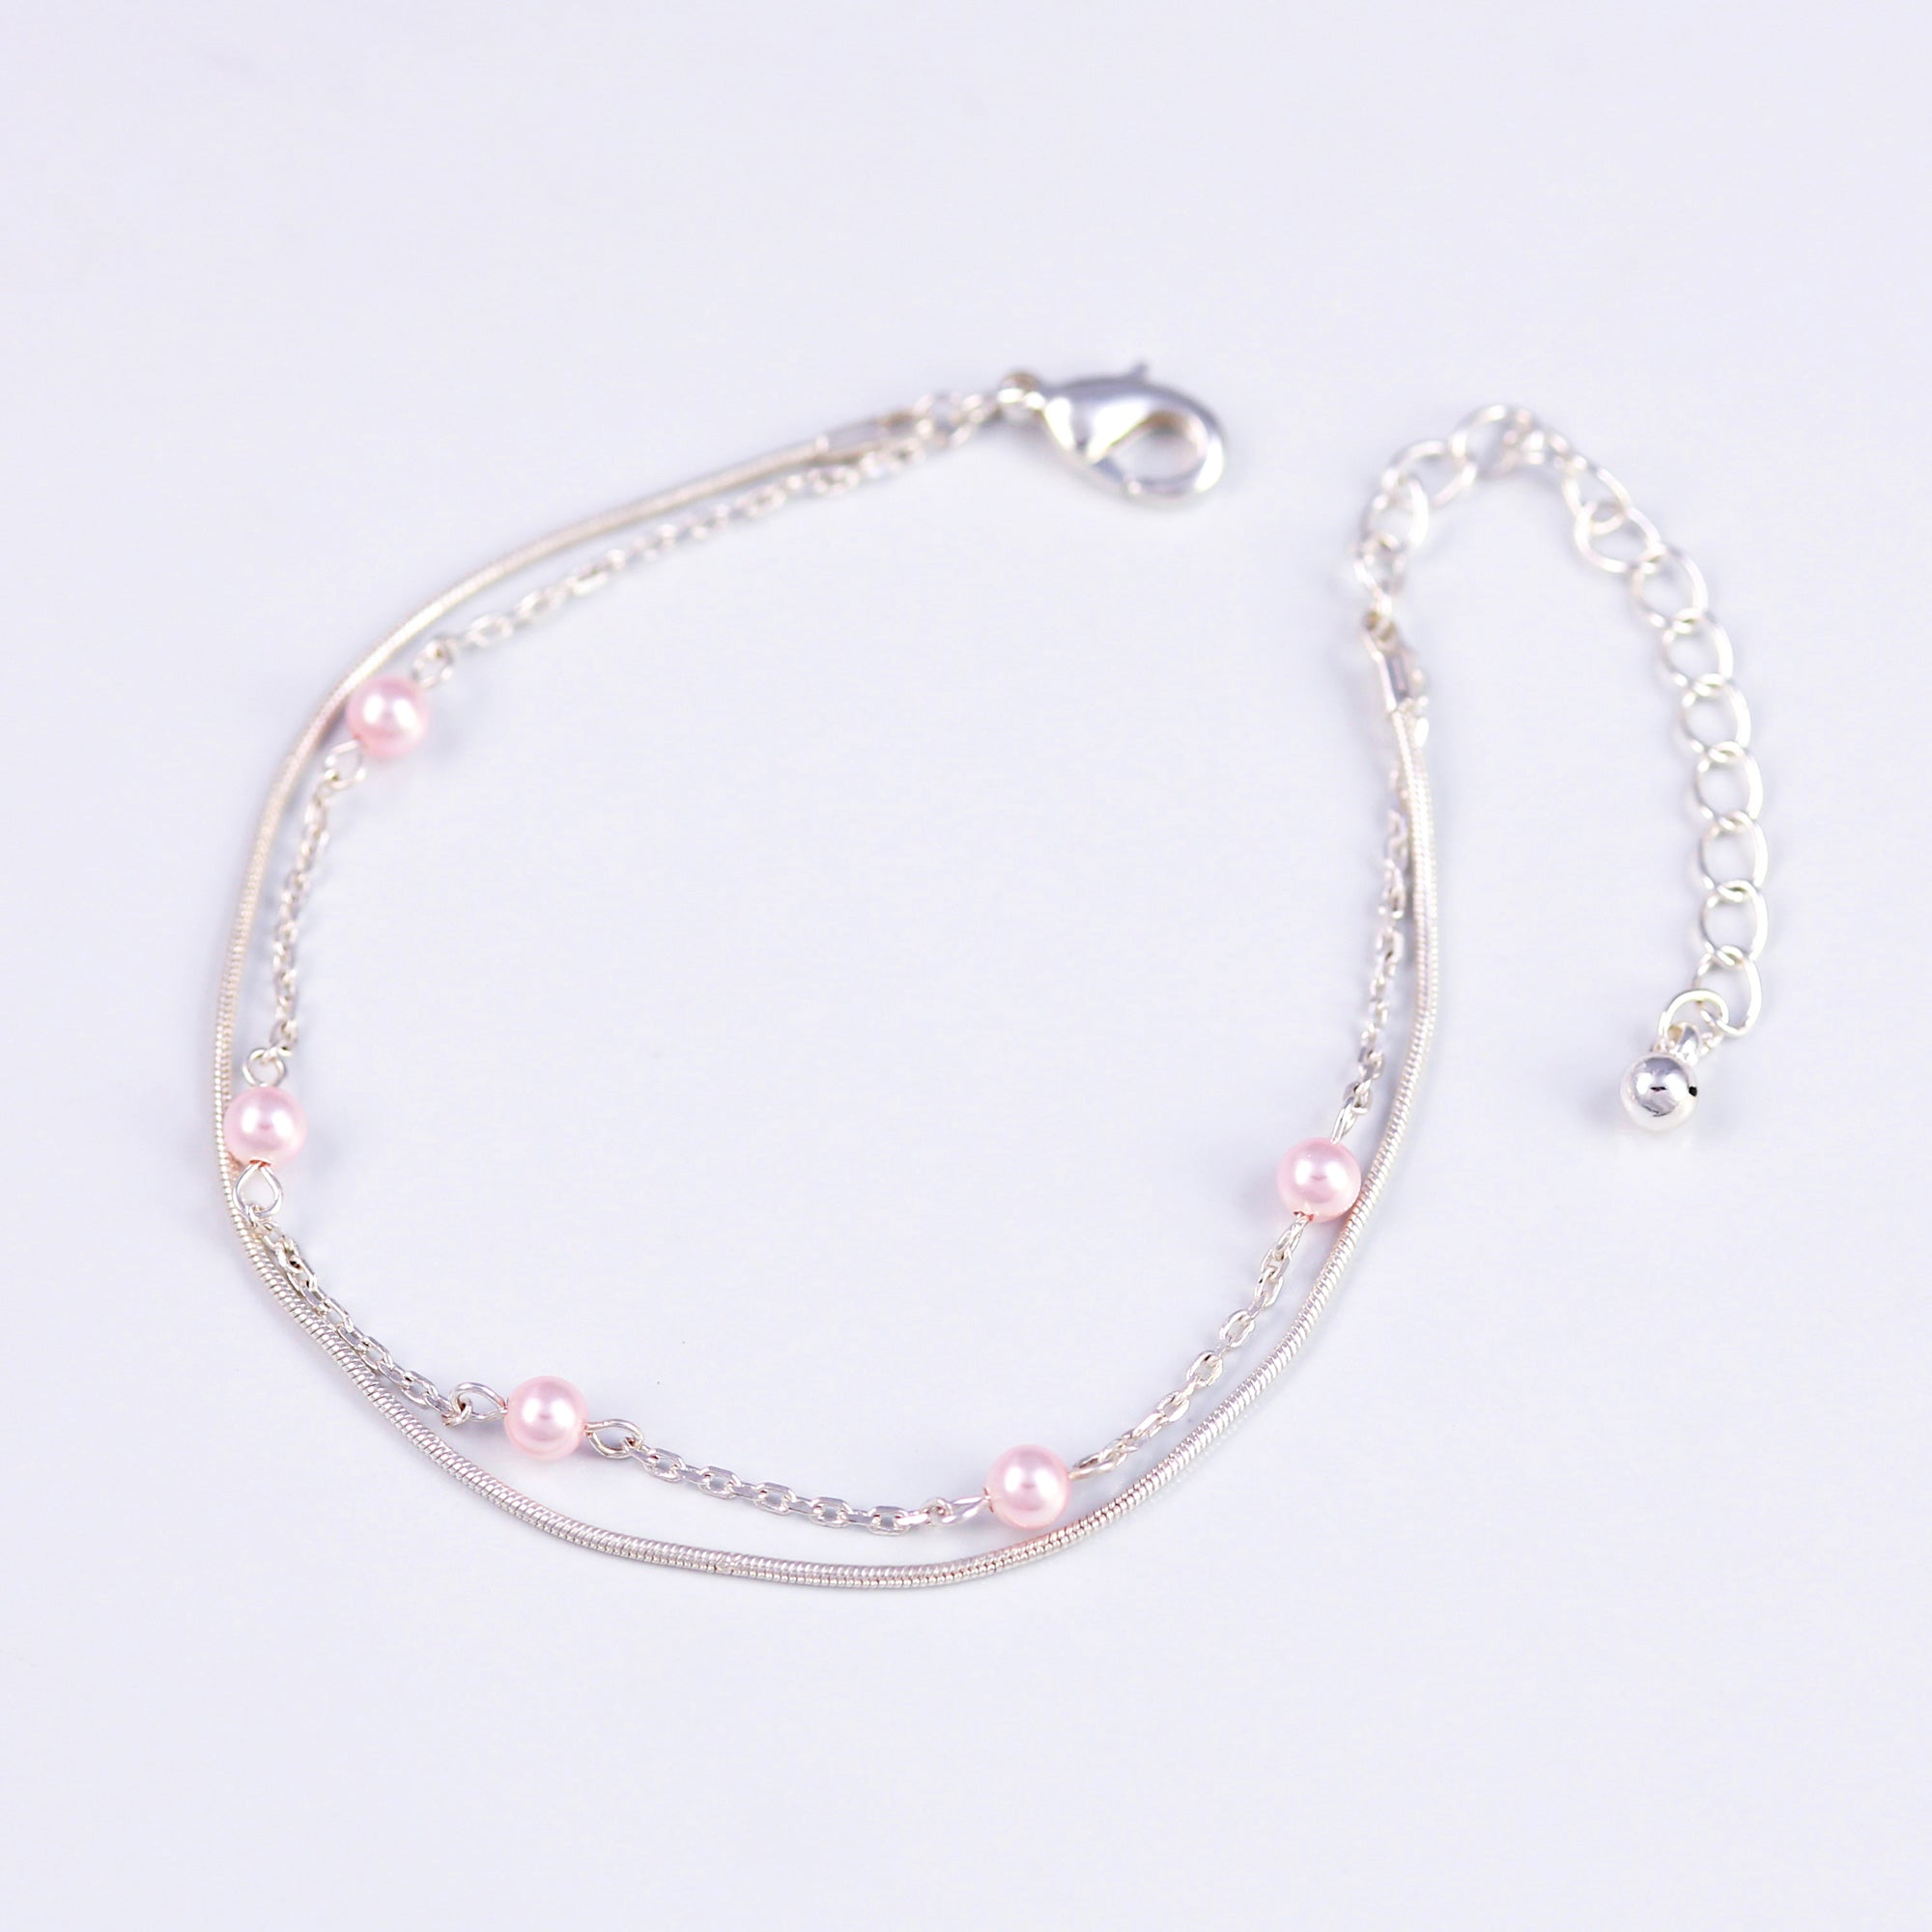 Delicate Silver Bracelet with Crystal Light Rose Pearls